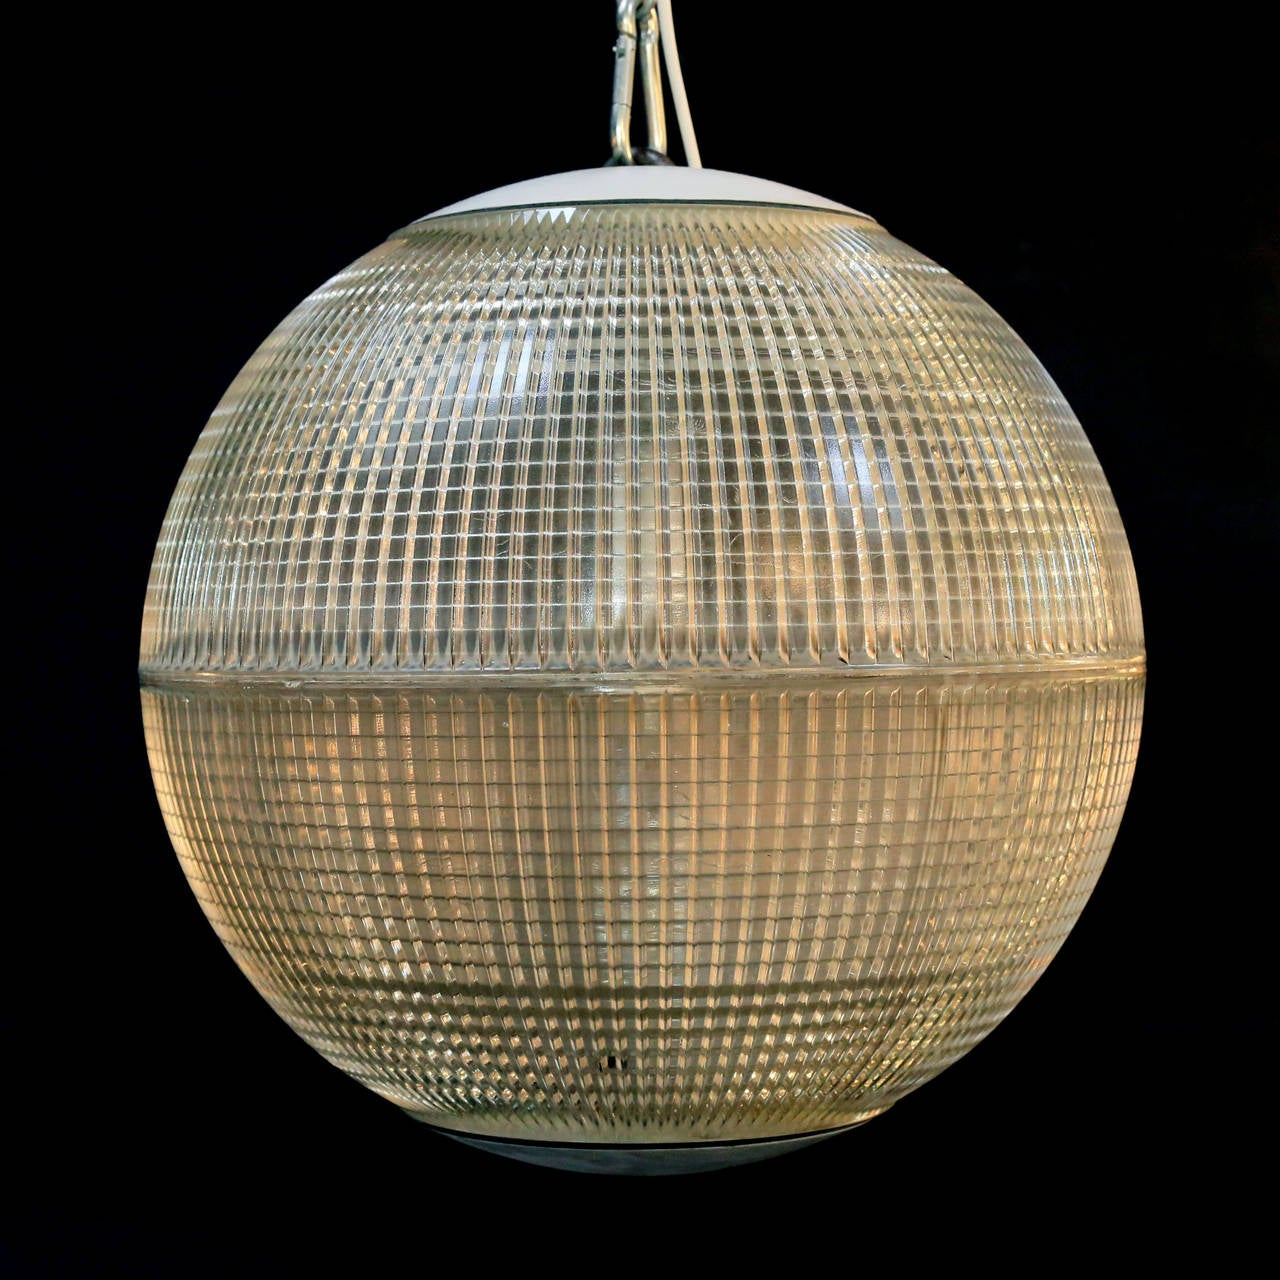 French spherical holophane pendant lights, circa 1960-1980, moulded glass. Some small nicks and blemishes to the glass, please request more images if neccessary. 20kg each. Re-wired and PAT tested.